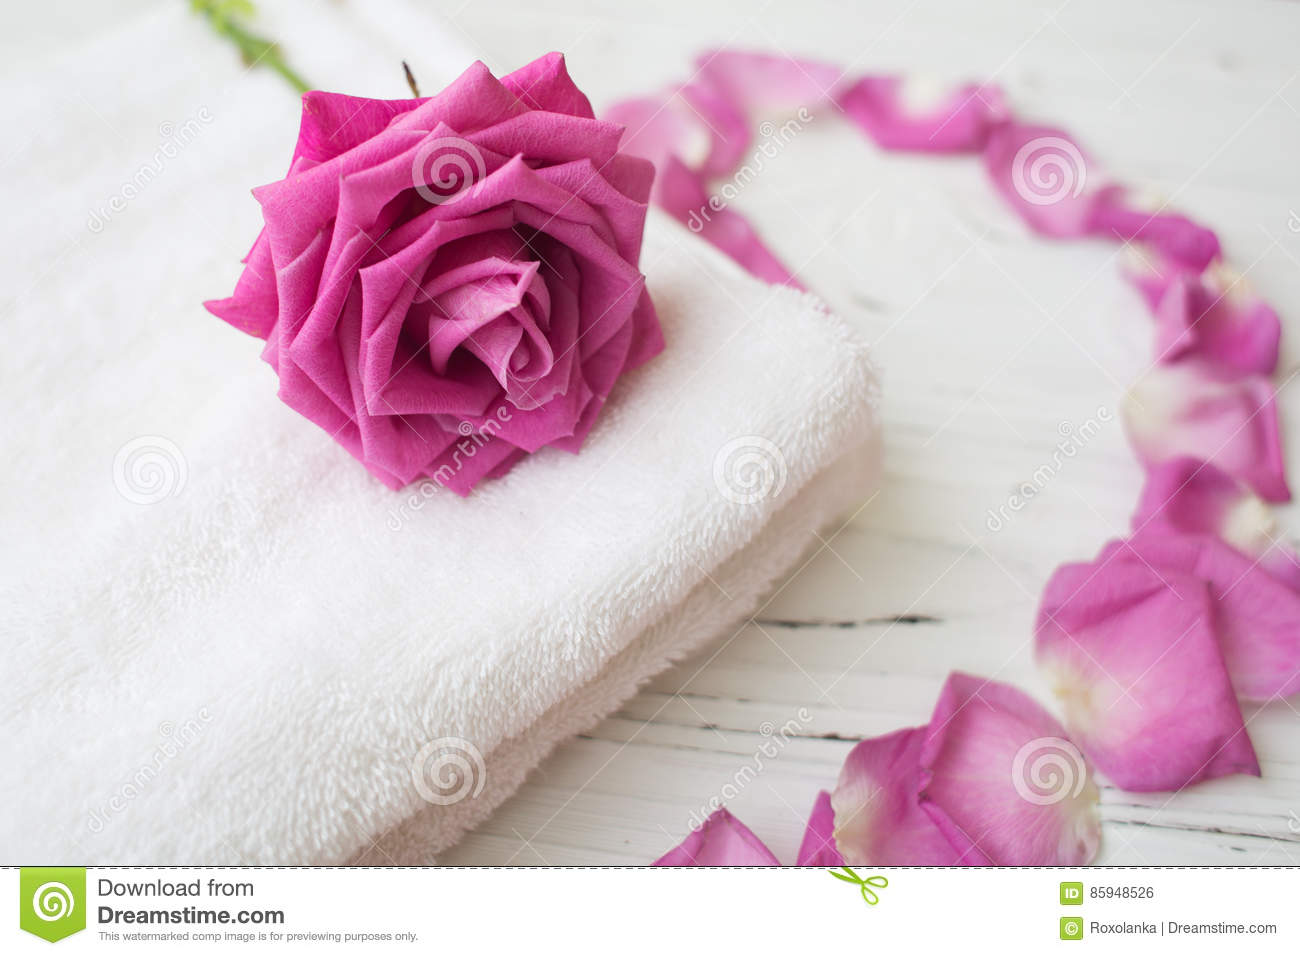 Pink rose and petals on white towel